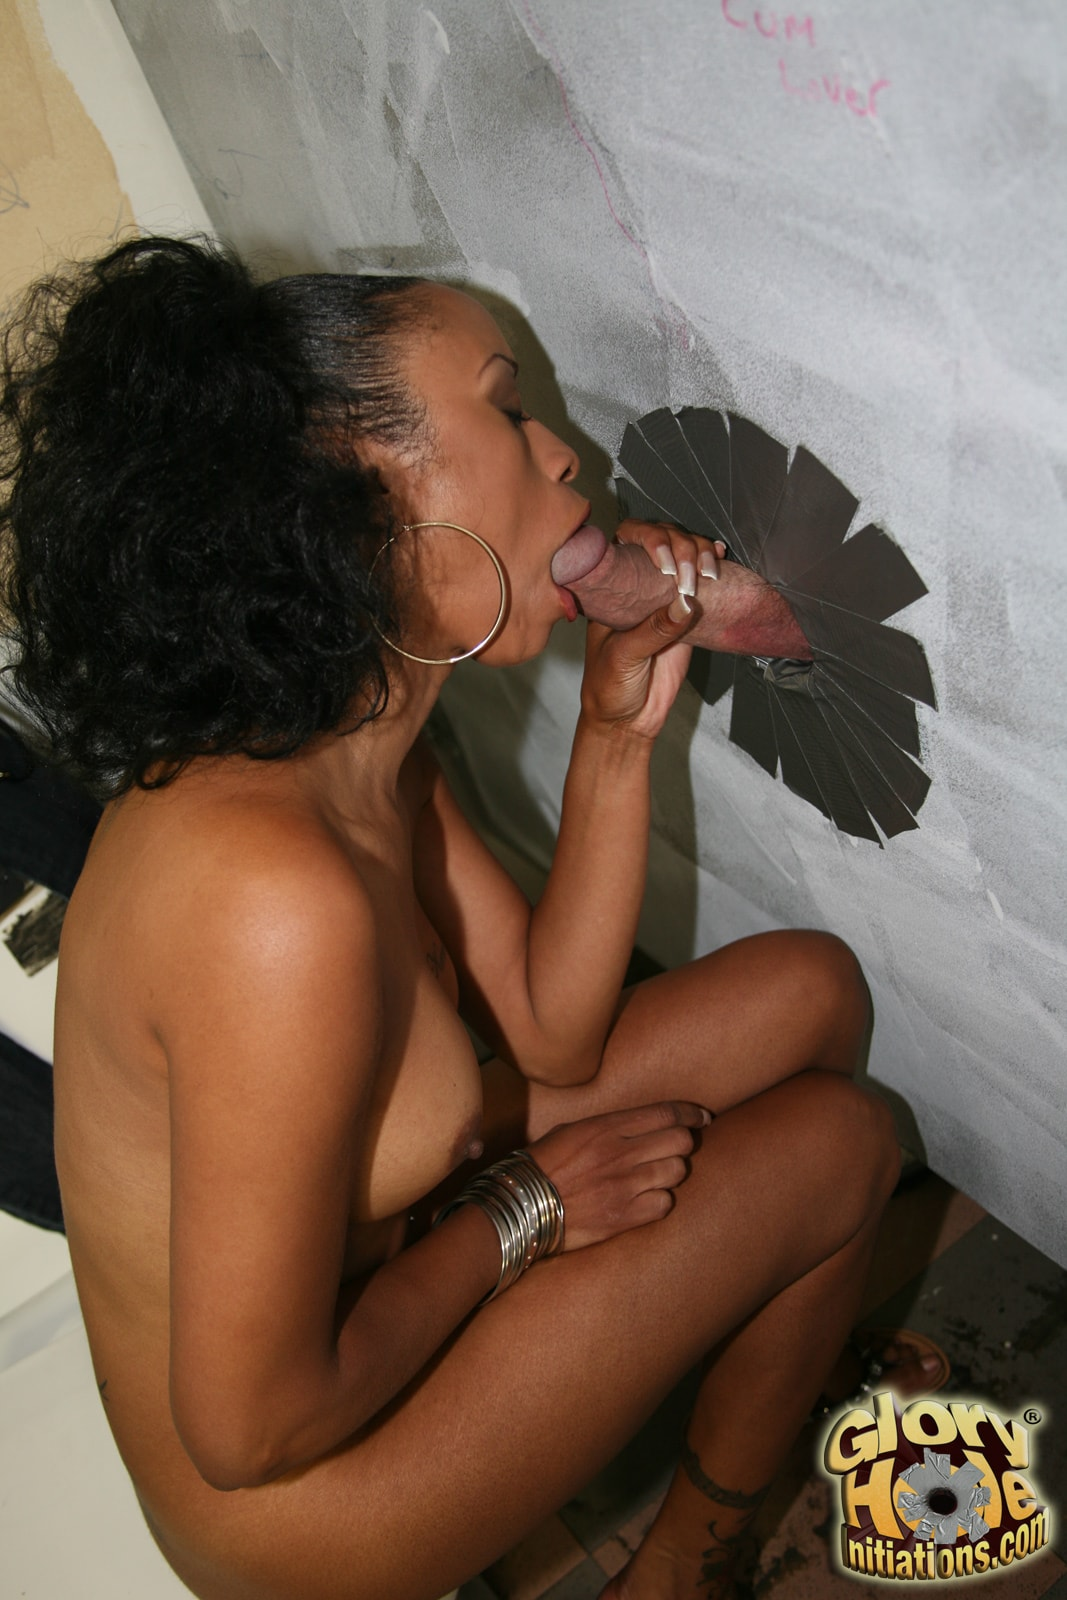 Dogfart 'Stacey Dollar - Glory Hole Initiations' starring Stacey Dollar (photo 23)